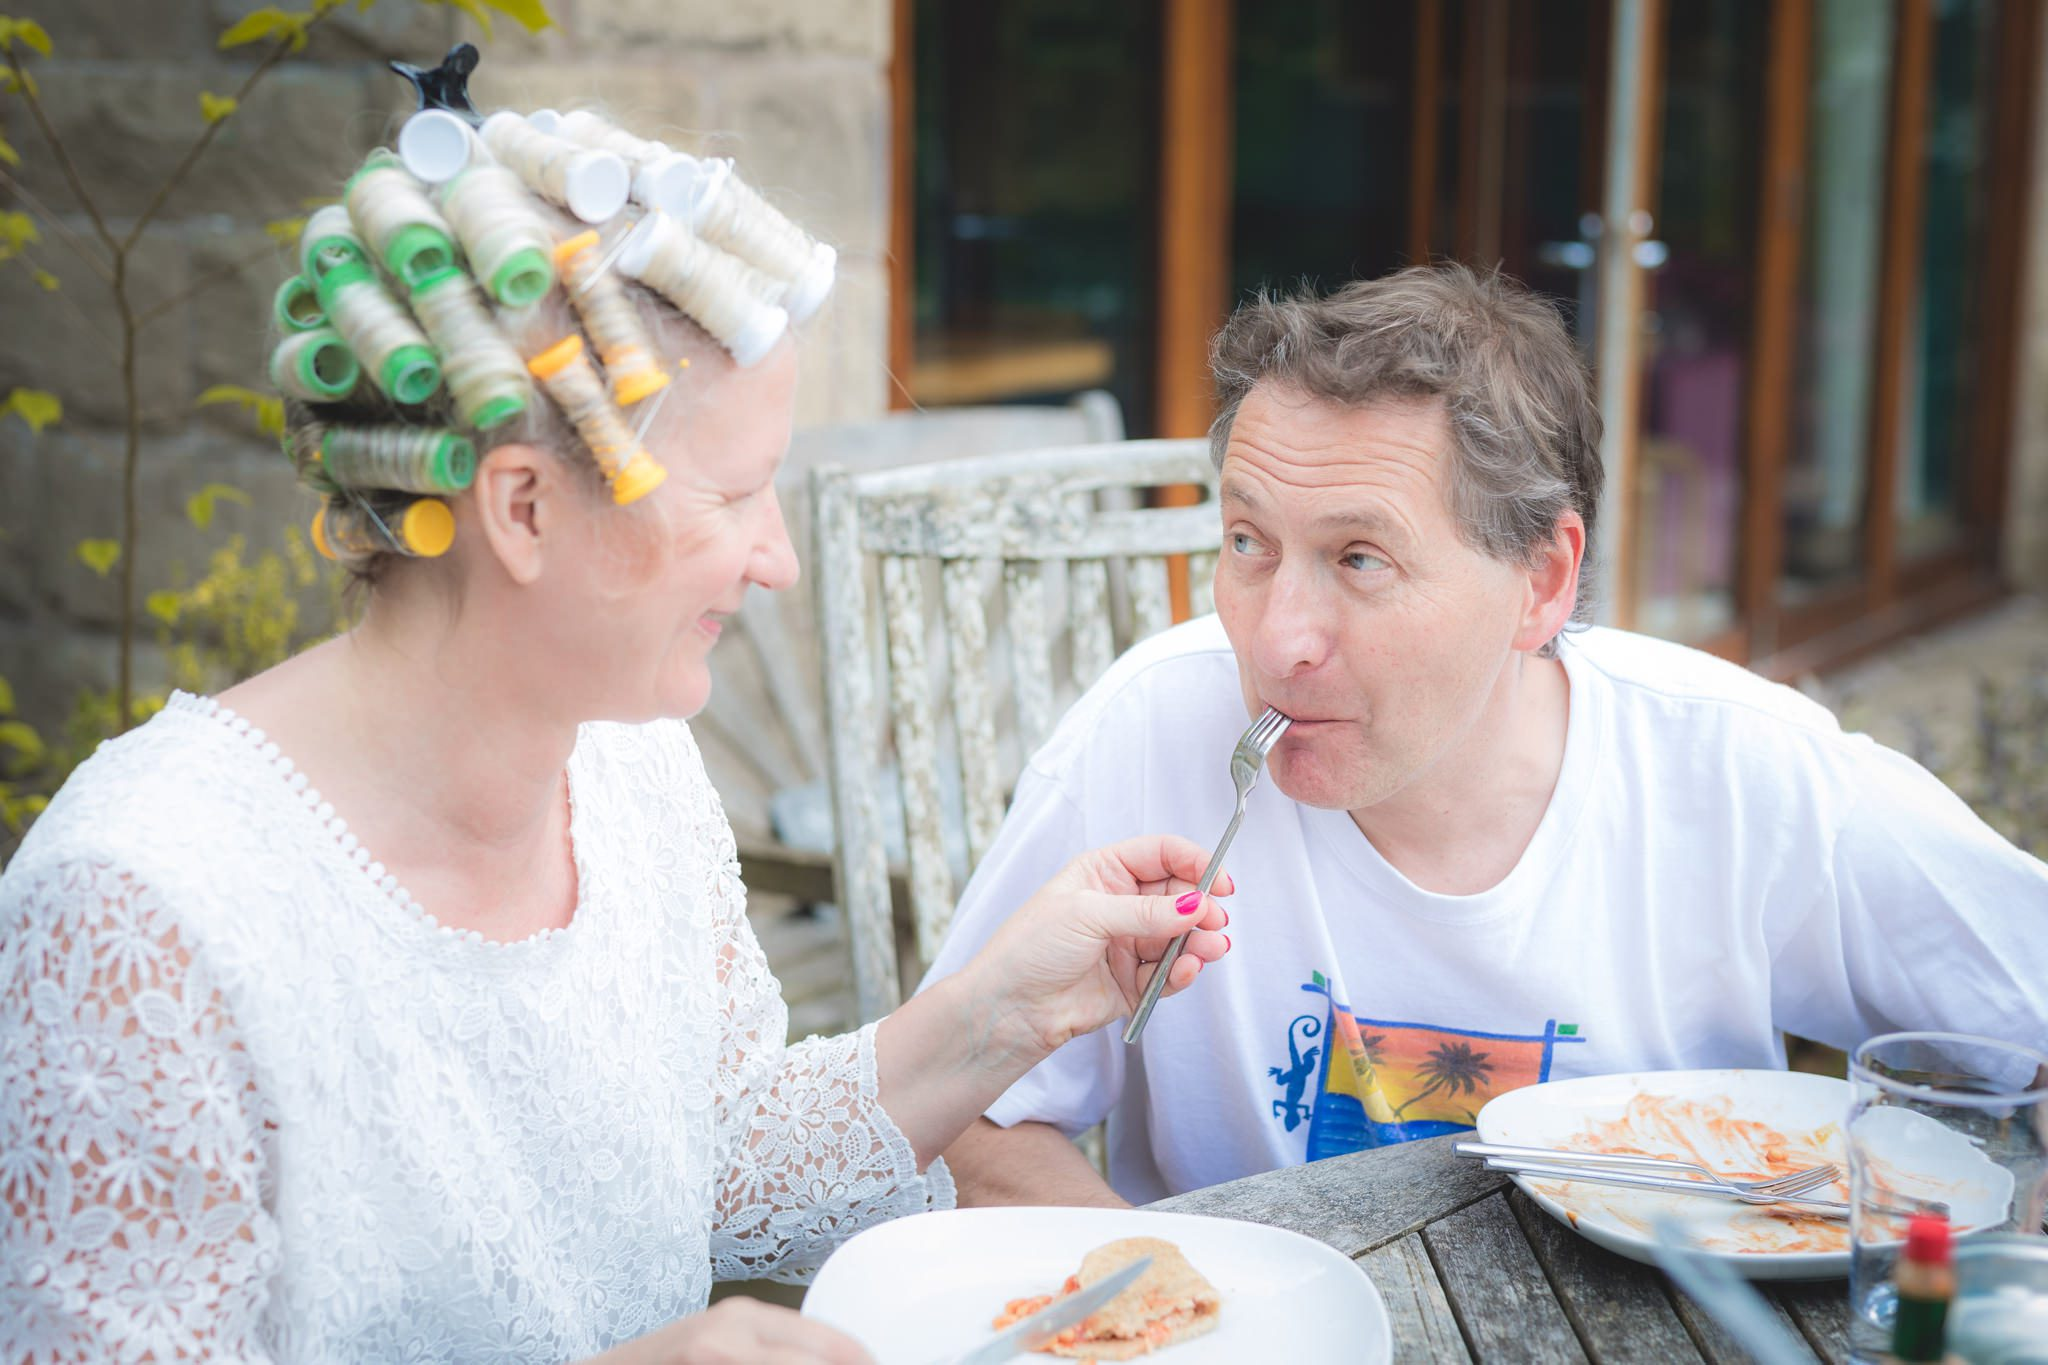 Derbyshire Wedding Photographer - Debbie and J - Breakfast Time